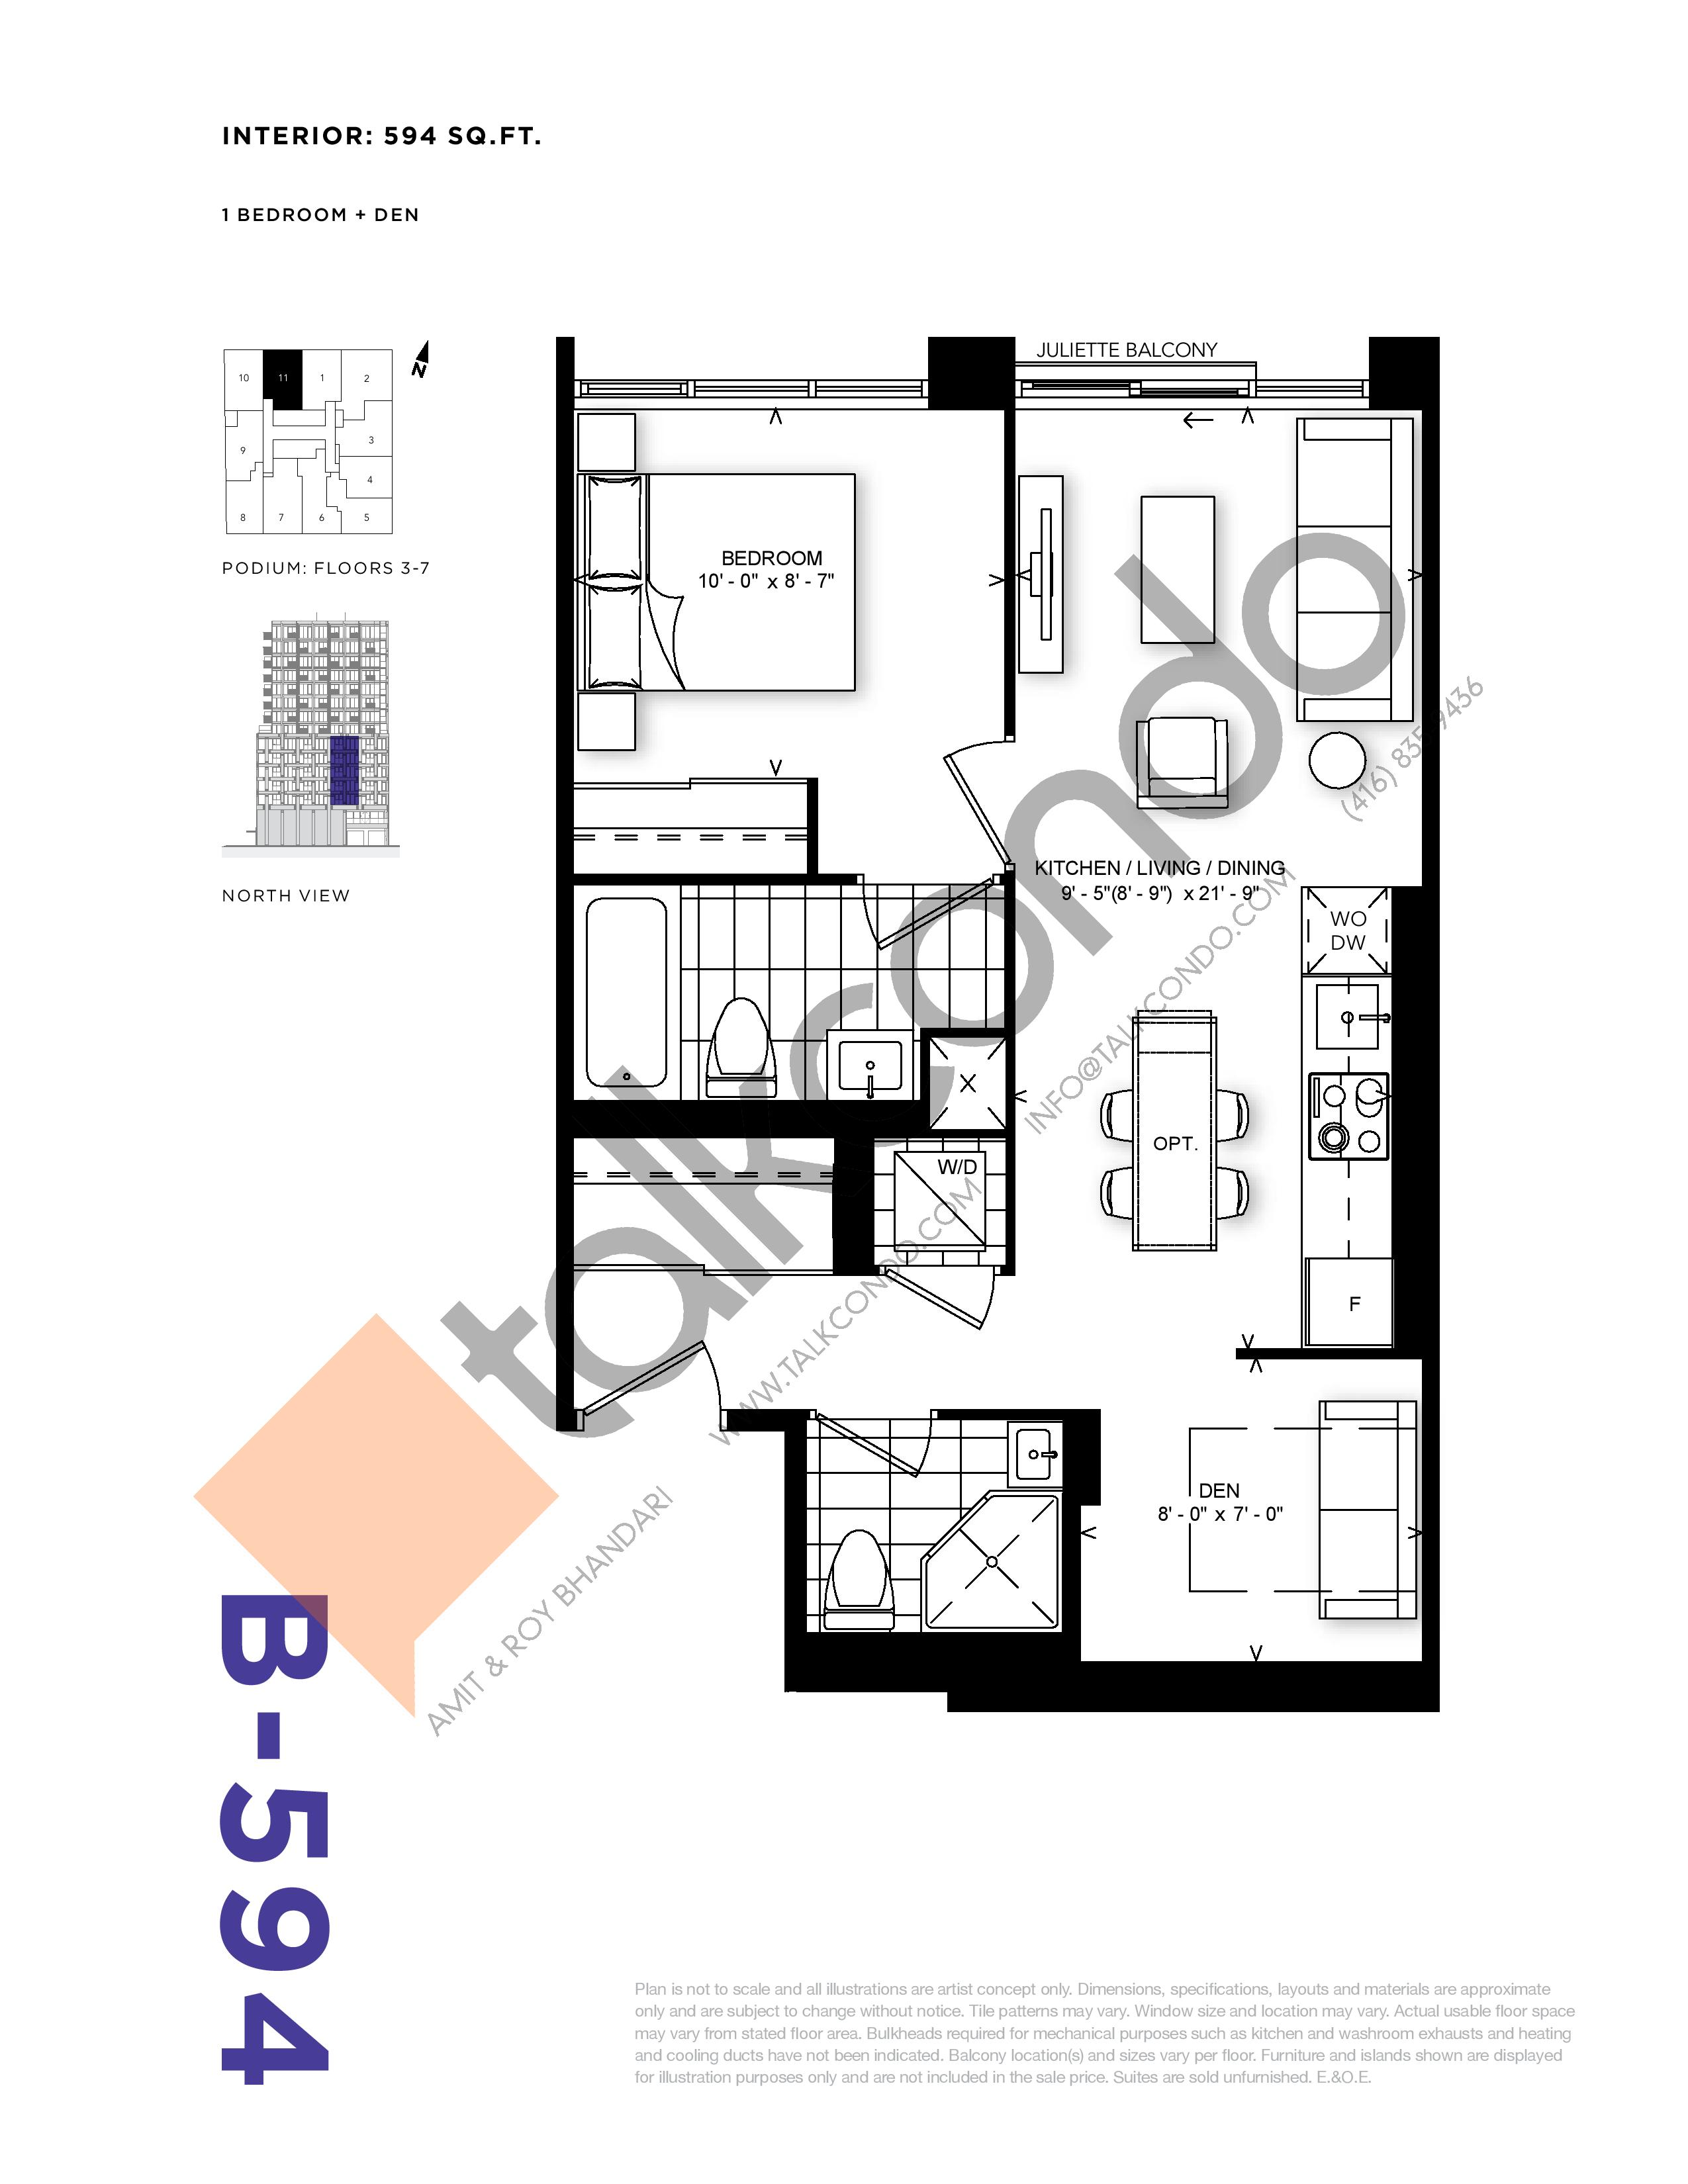 B-594 Floor Plan at RUSH Condos - 594 sq.ft